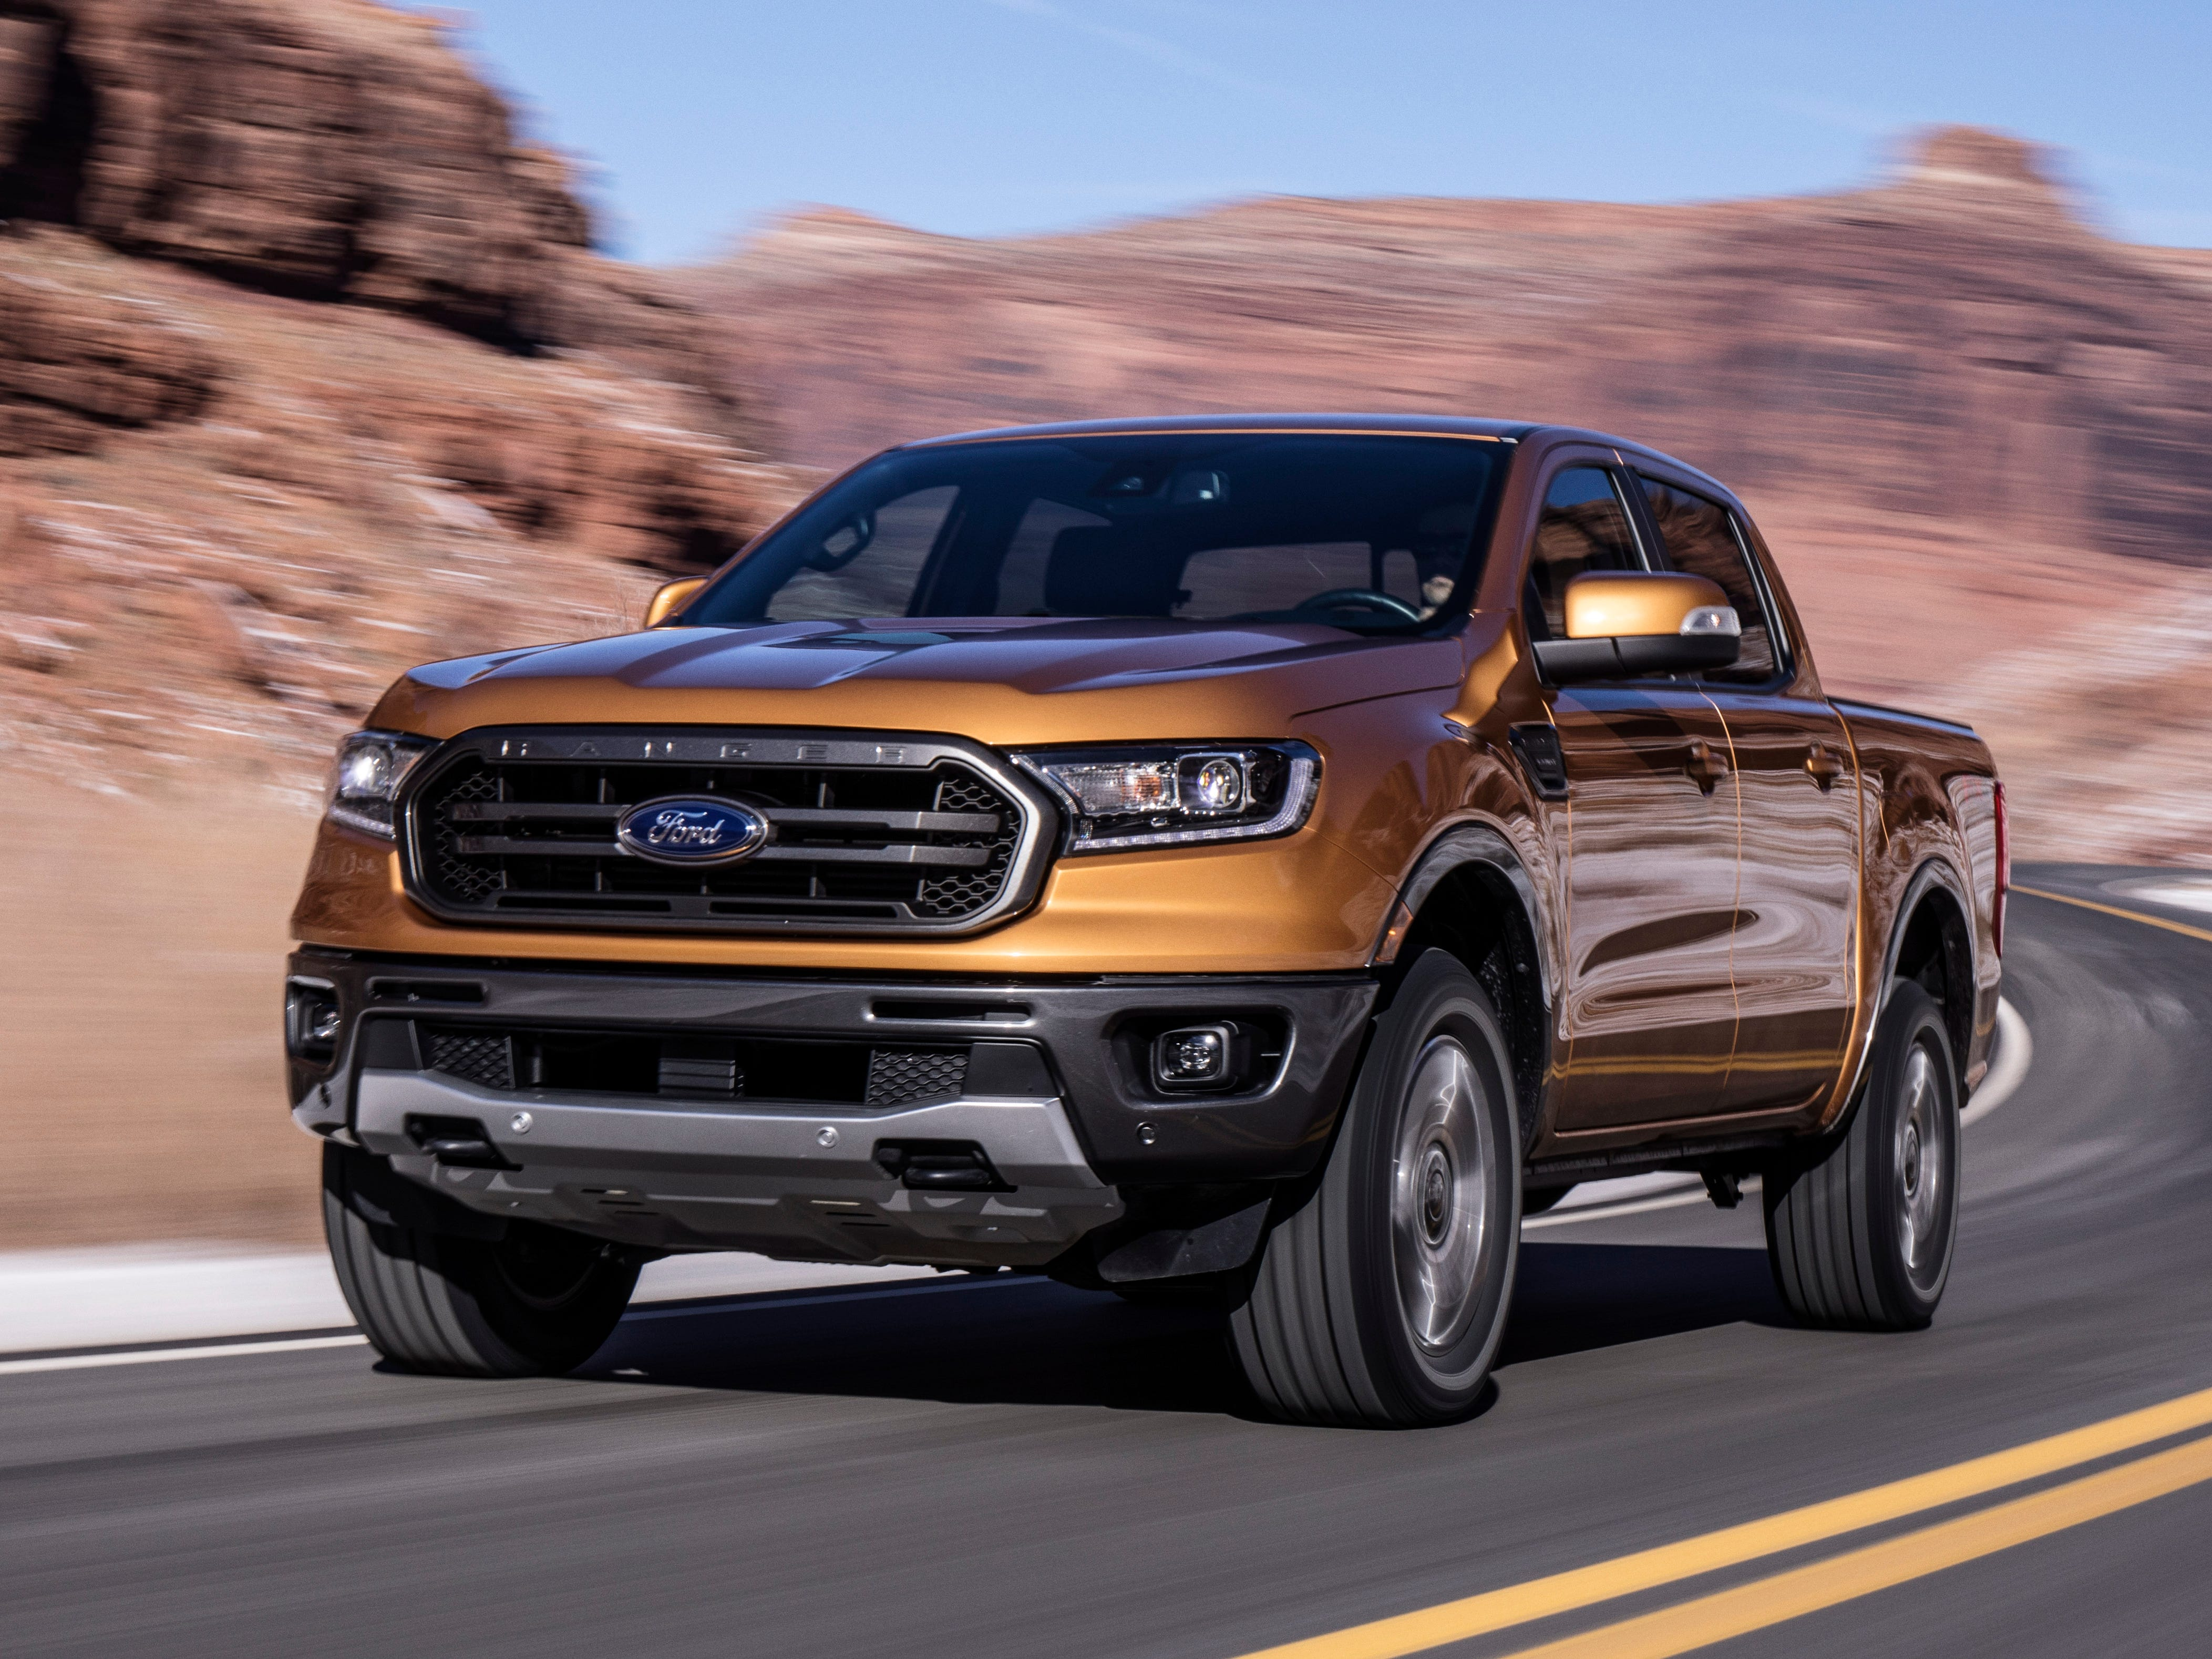 Ford: 2019 Ranger fuel economy to top class